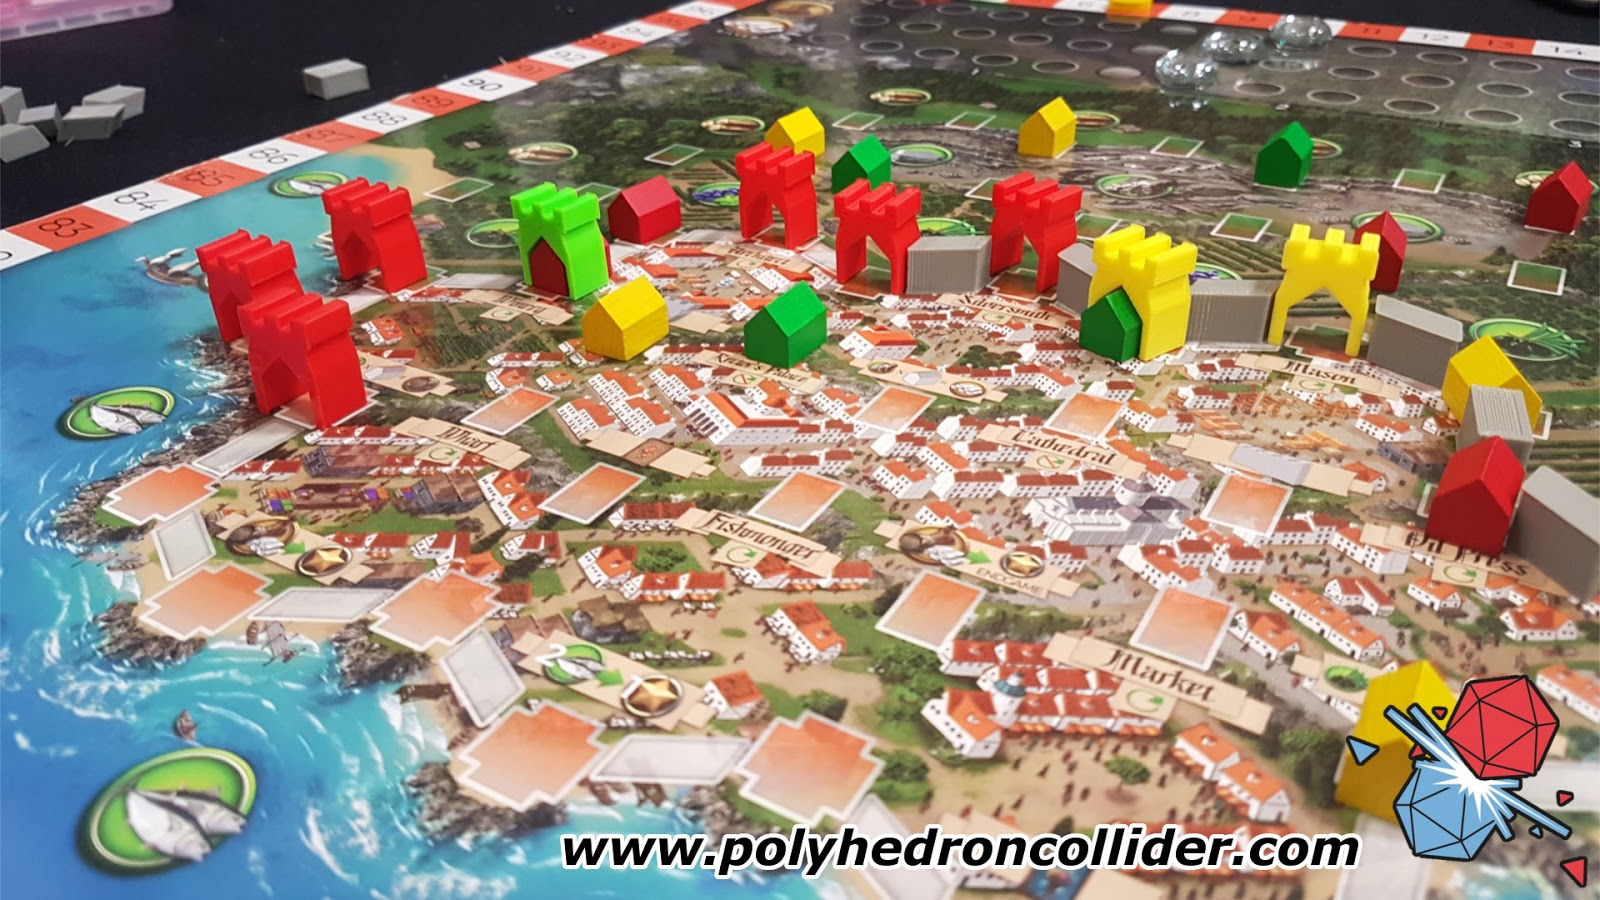 Polyhedron Collider - Board Game News